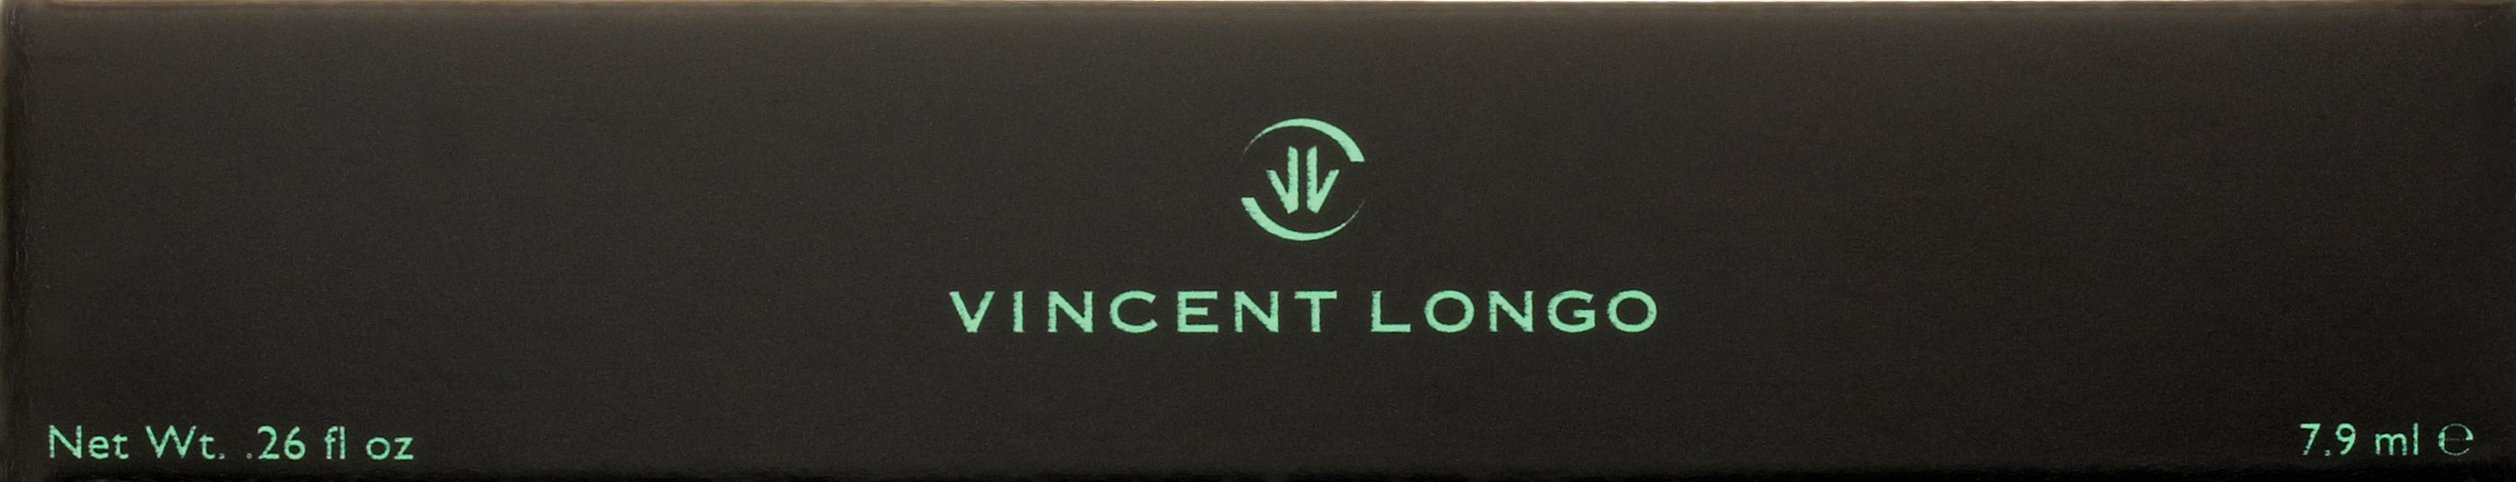 VINCENT LONGO Lip and Cheek Gel Stain, Baby Boo by VINCENT LONGO (Image #4)